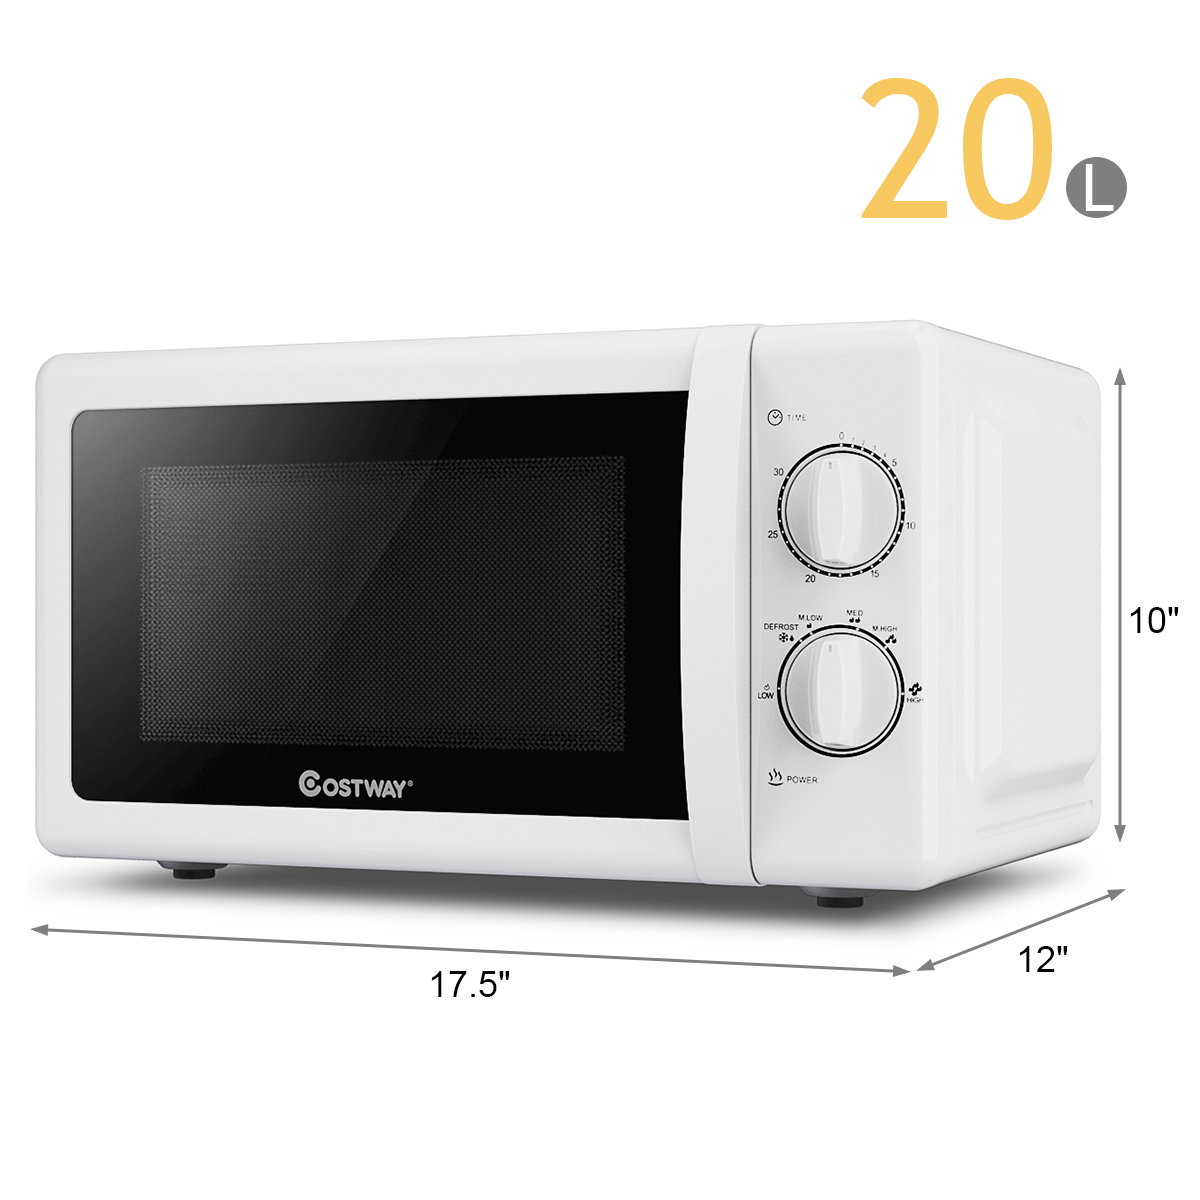 costway retro countertop microwave oven 0 7 cubic feet 700w rotary control mint green